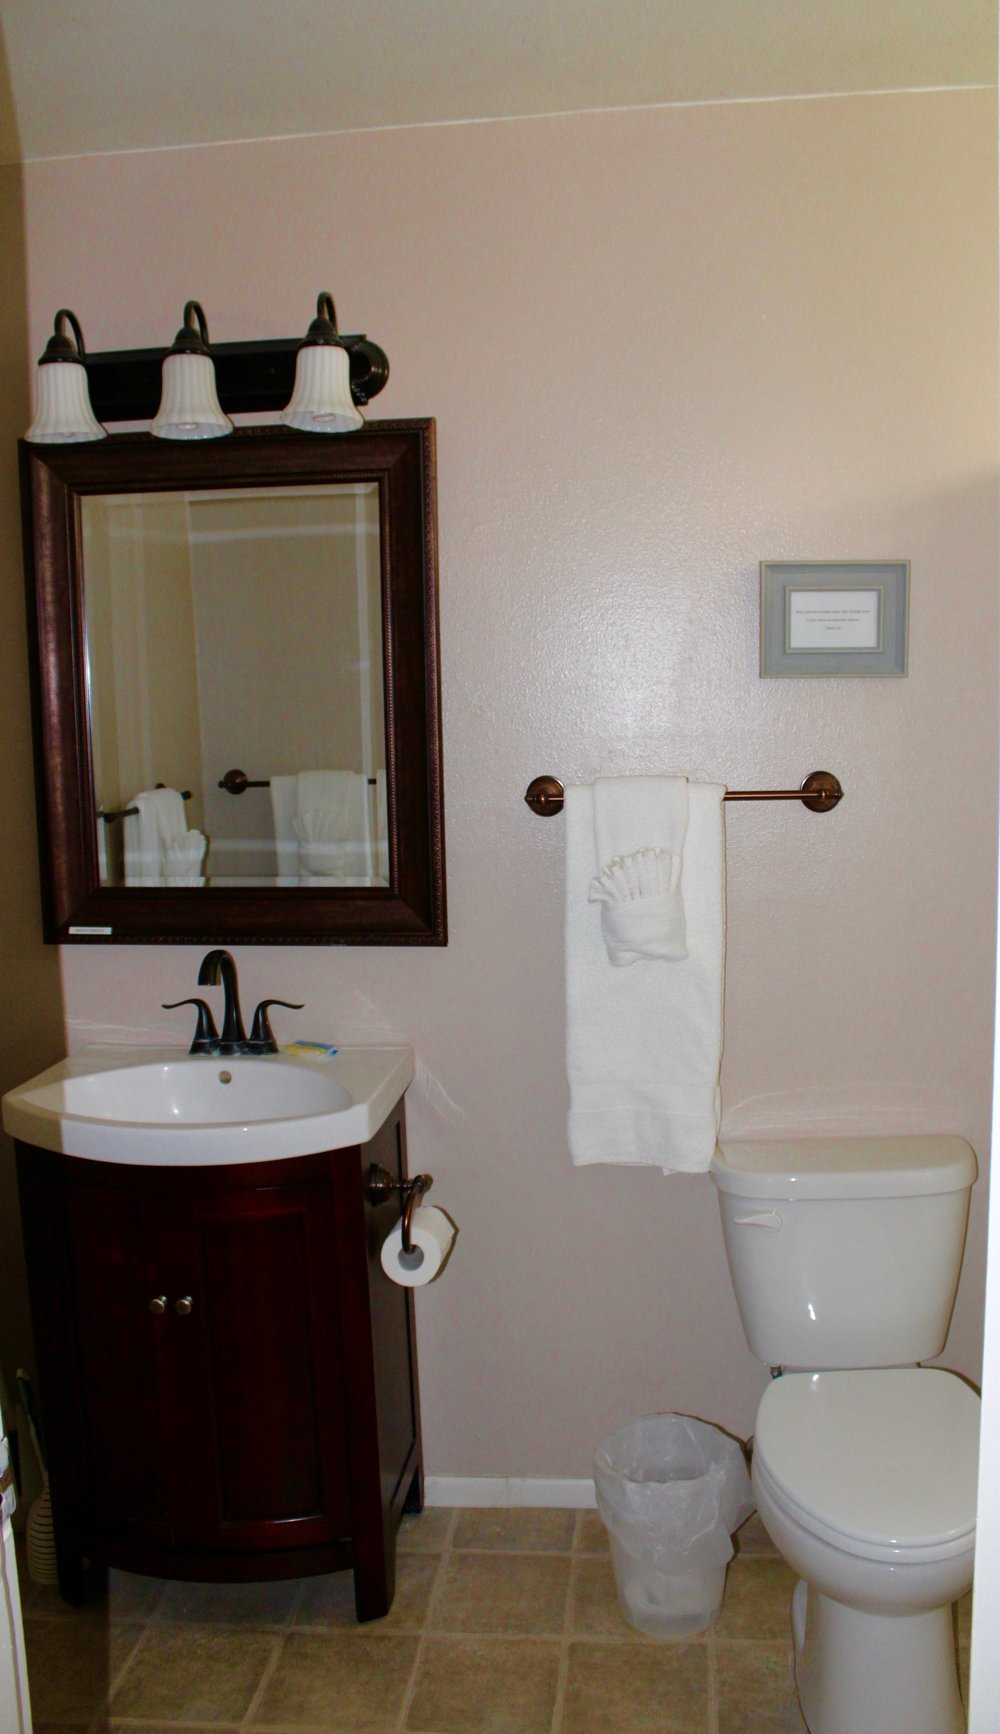 Unit 4 Partial Bathroom.JPG